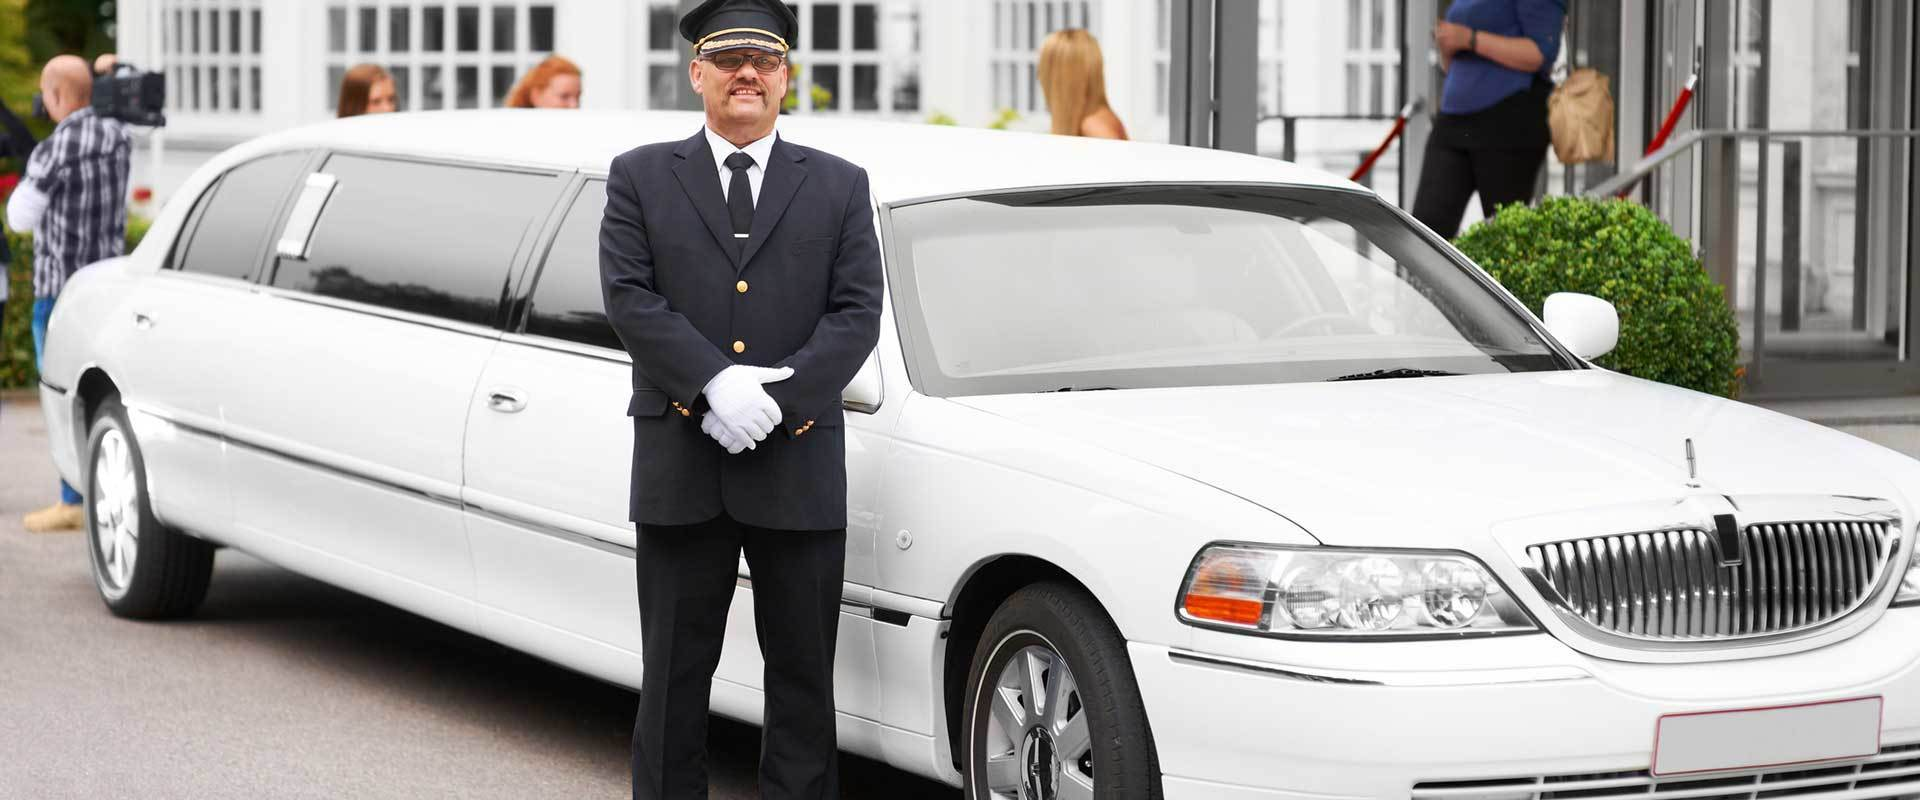 Limo Hire Services London – Luxury Chauffeured Car Rentals